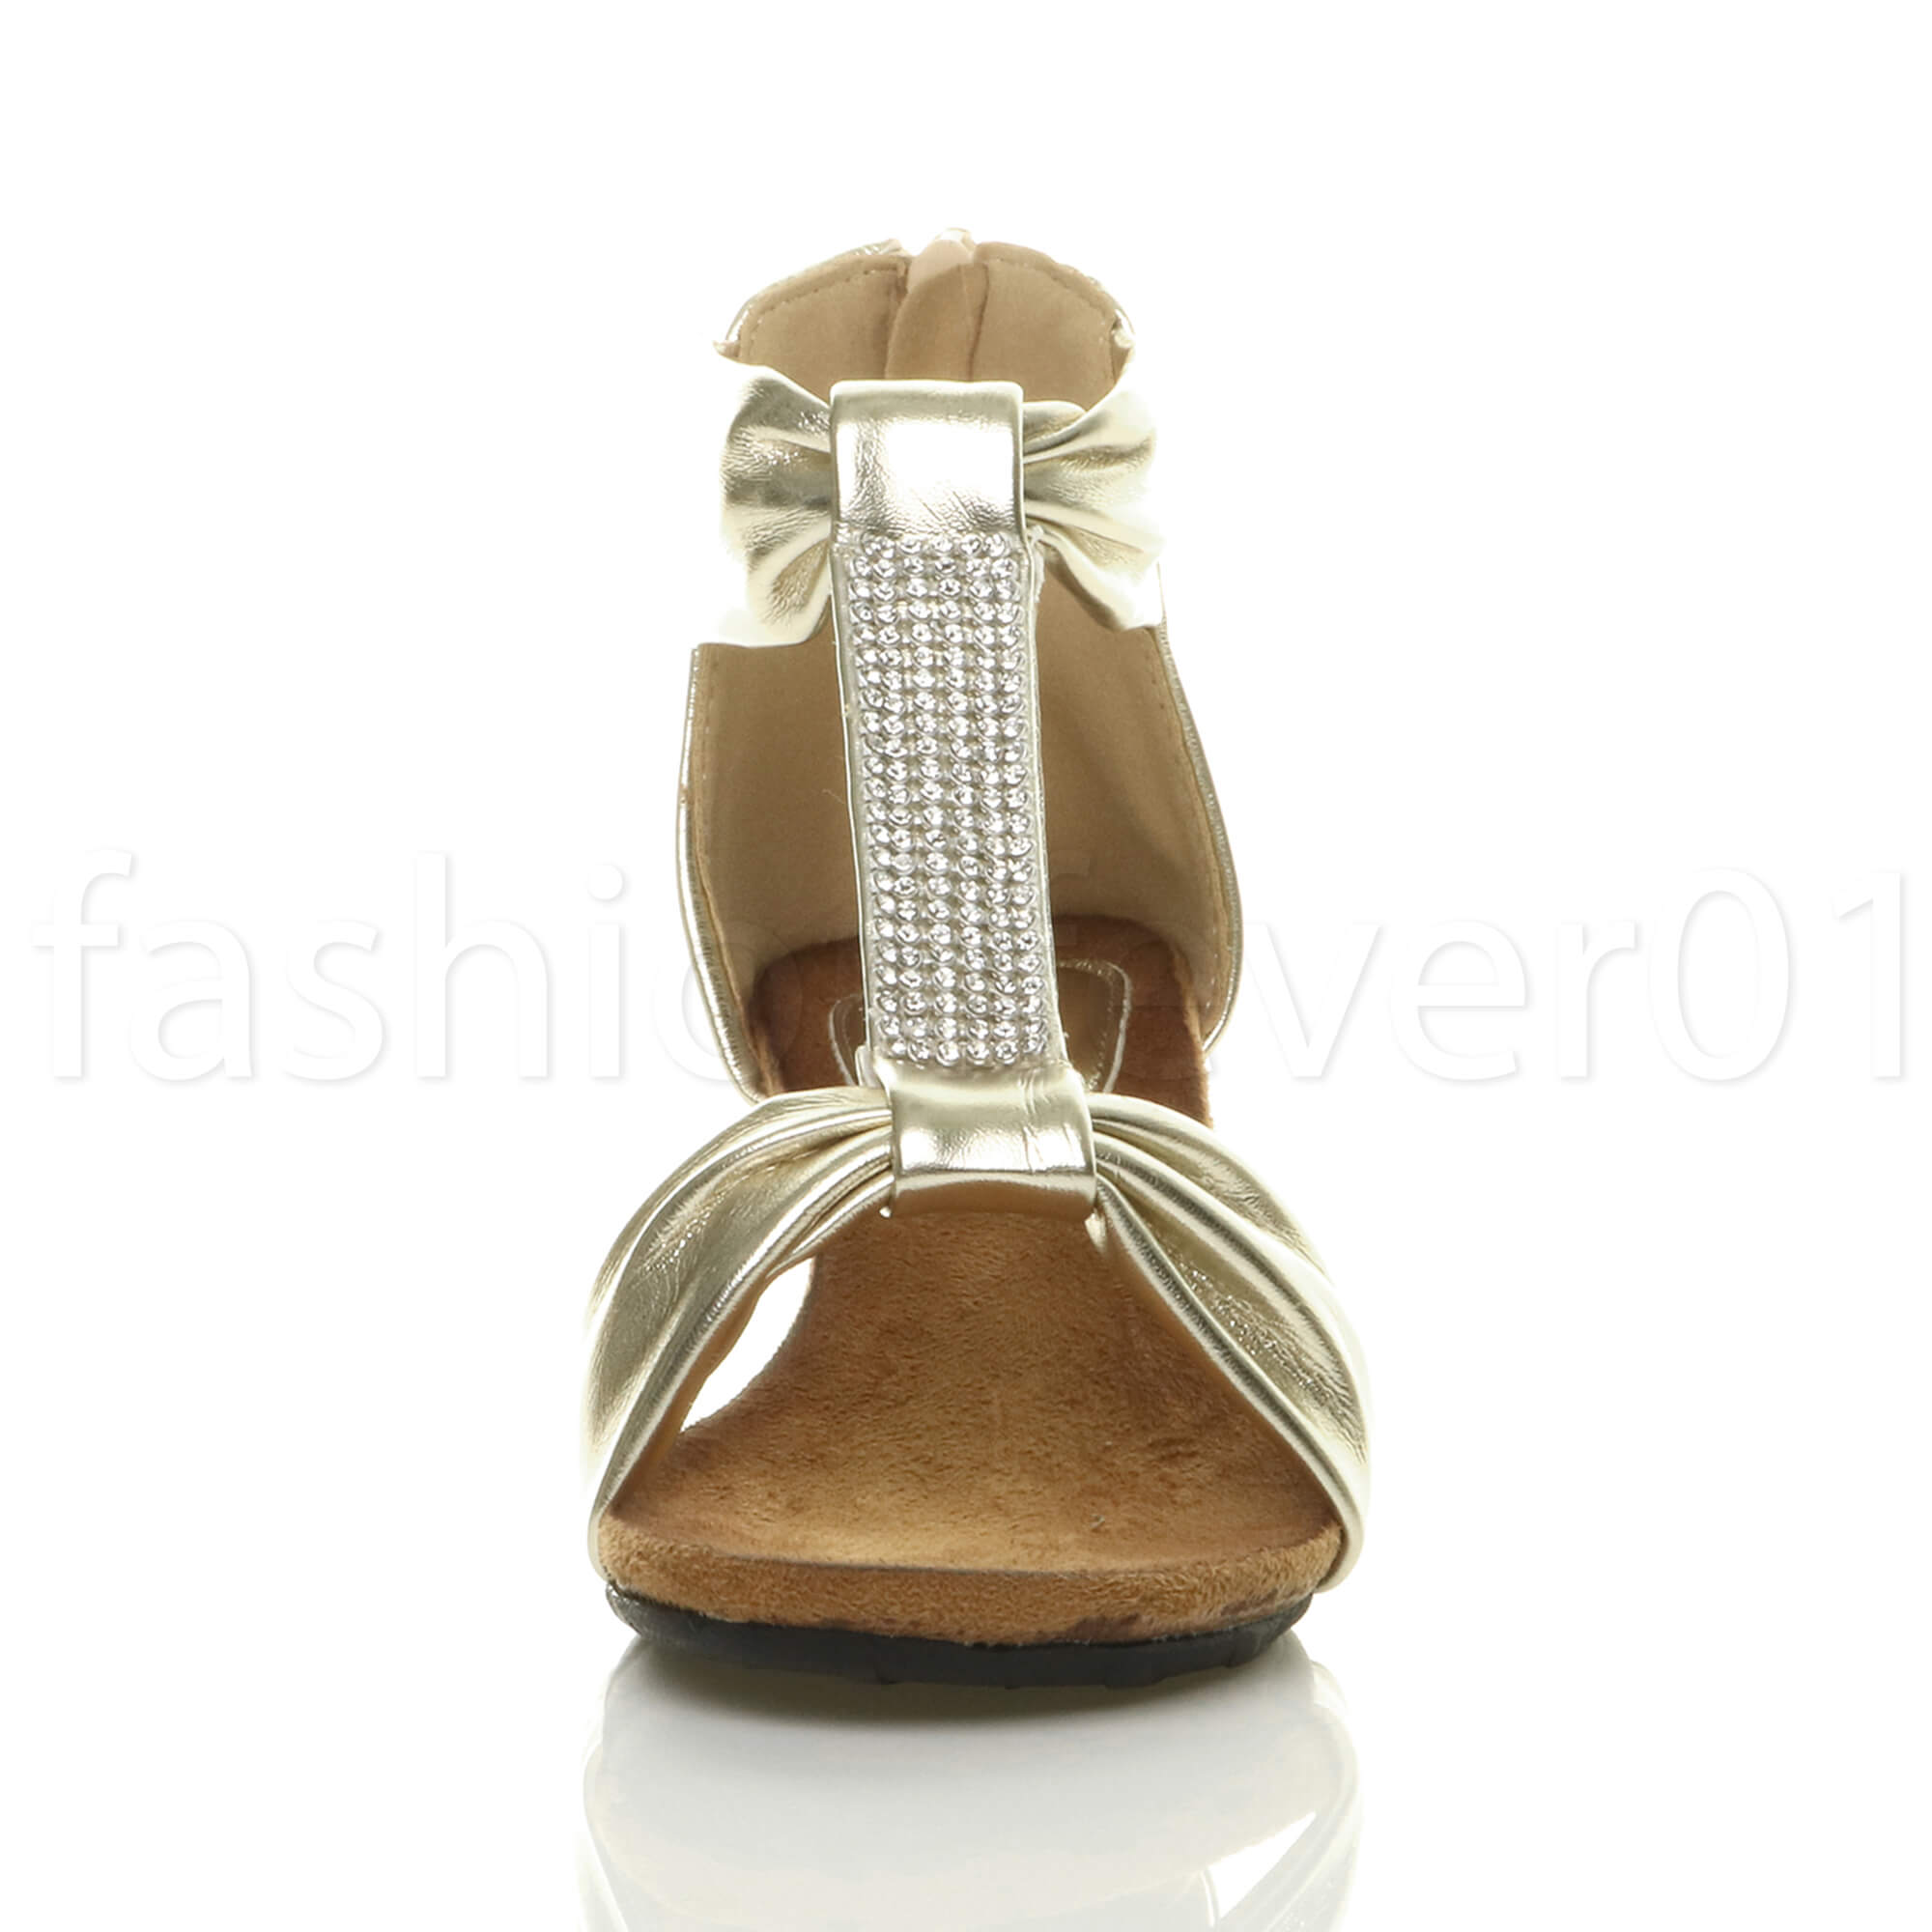 WOMENS-LADIES-MID-HEEL-WEDGE-ZIP-T-BAR-STRAPPY-DIAMANTE-SUMMER-PARTY-SANDALS